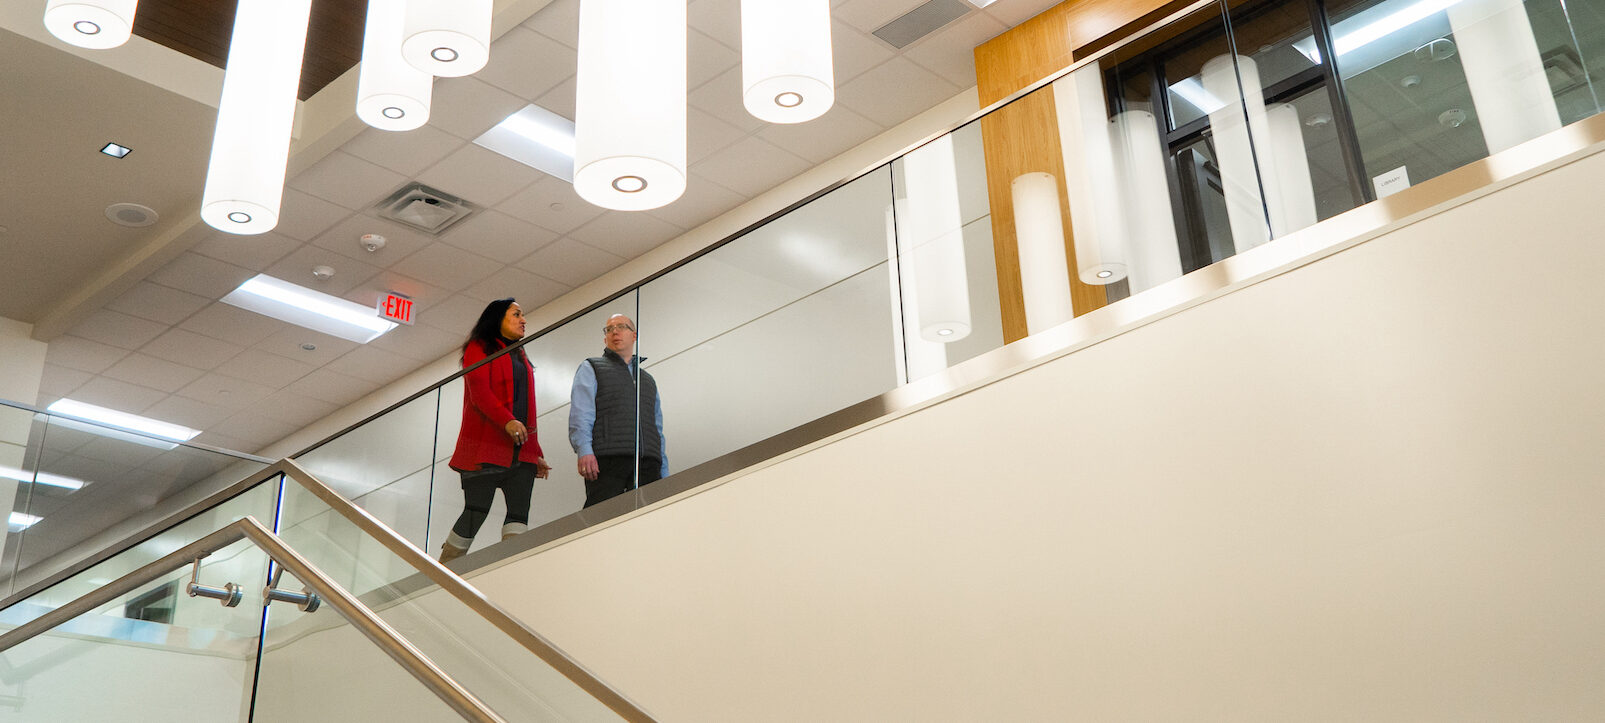 Two people walking in the Mesquite Metroplex Center